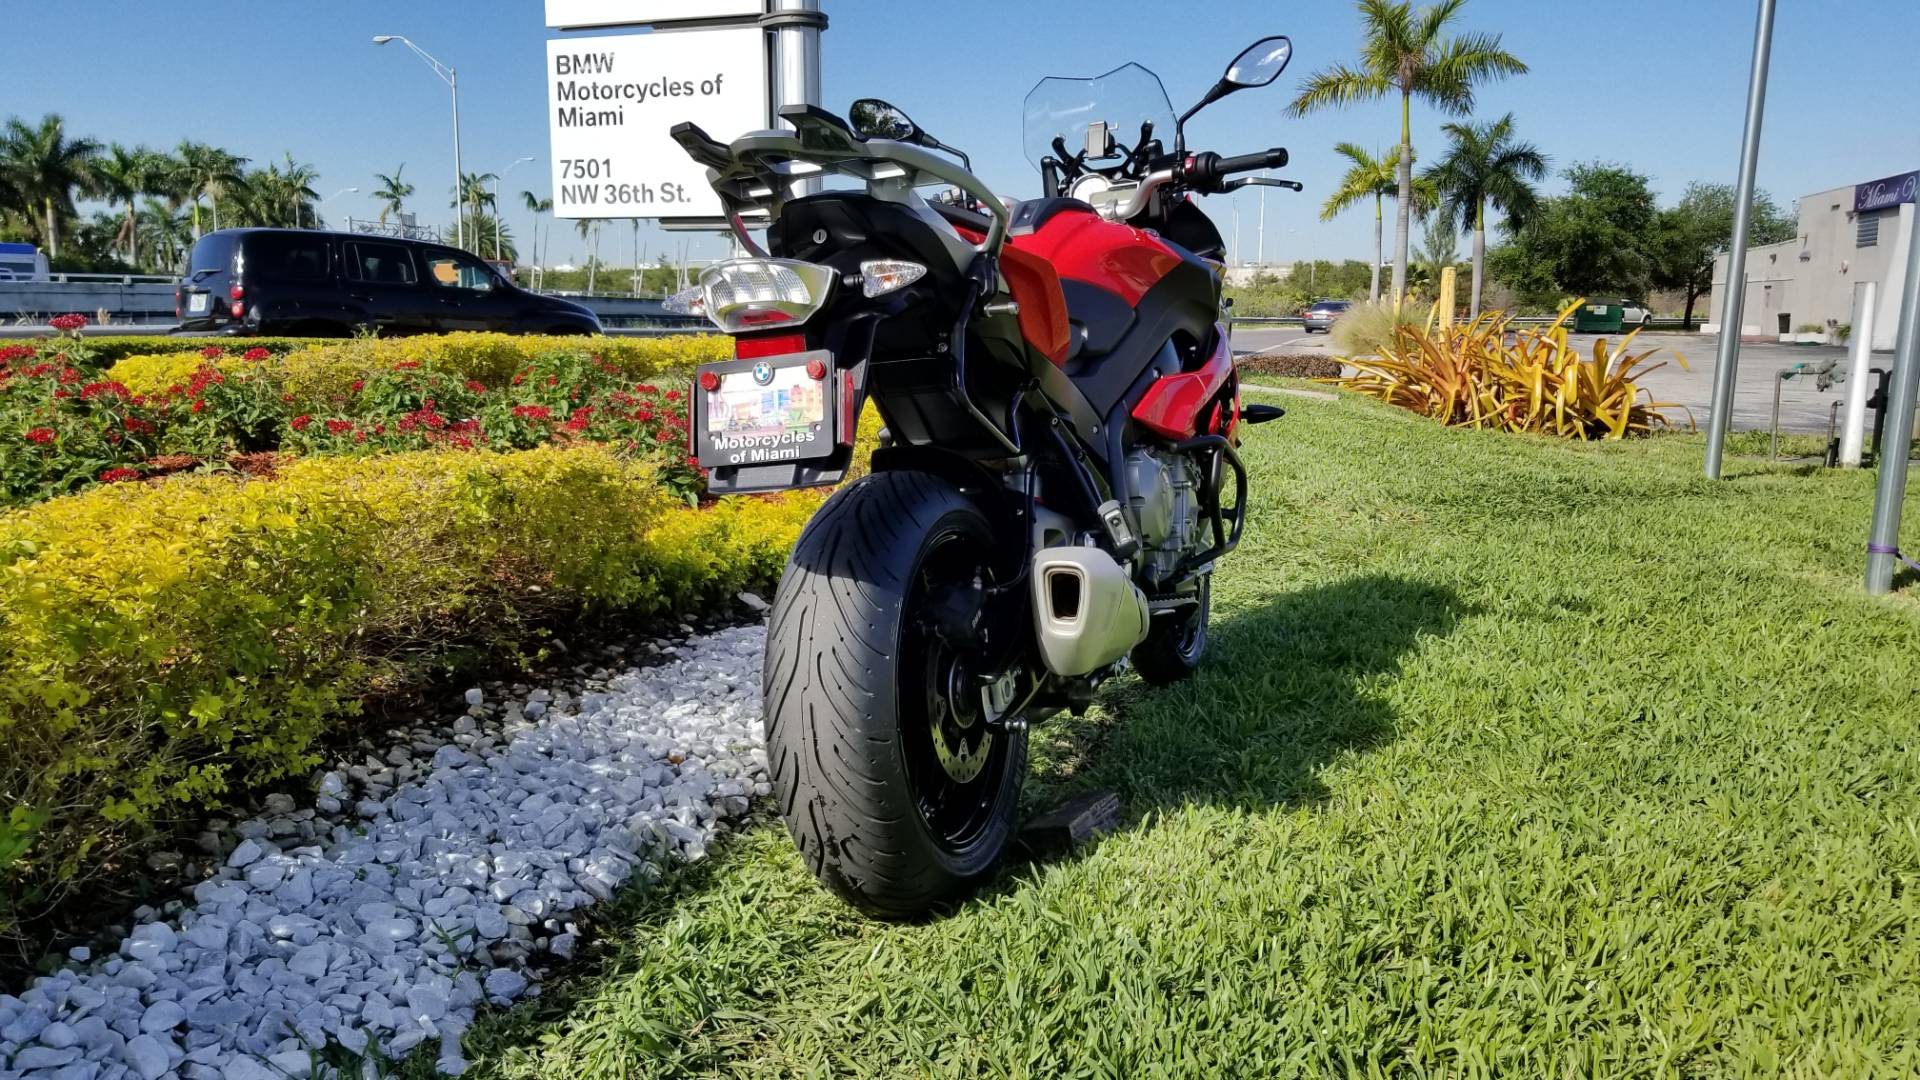 Used 2016 BMW S 1000 XR For Sale, Pre Owned BMW S 1000XR For Sale, Pre-Owned BMW Motorcycle S1000XR, BMW Motorcycle, S 1000 XR, DUAL, BMW - Photo 20